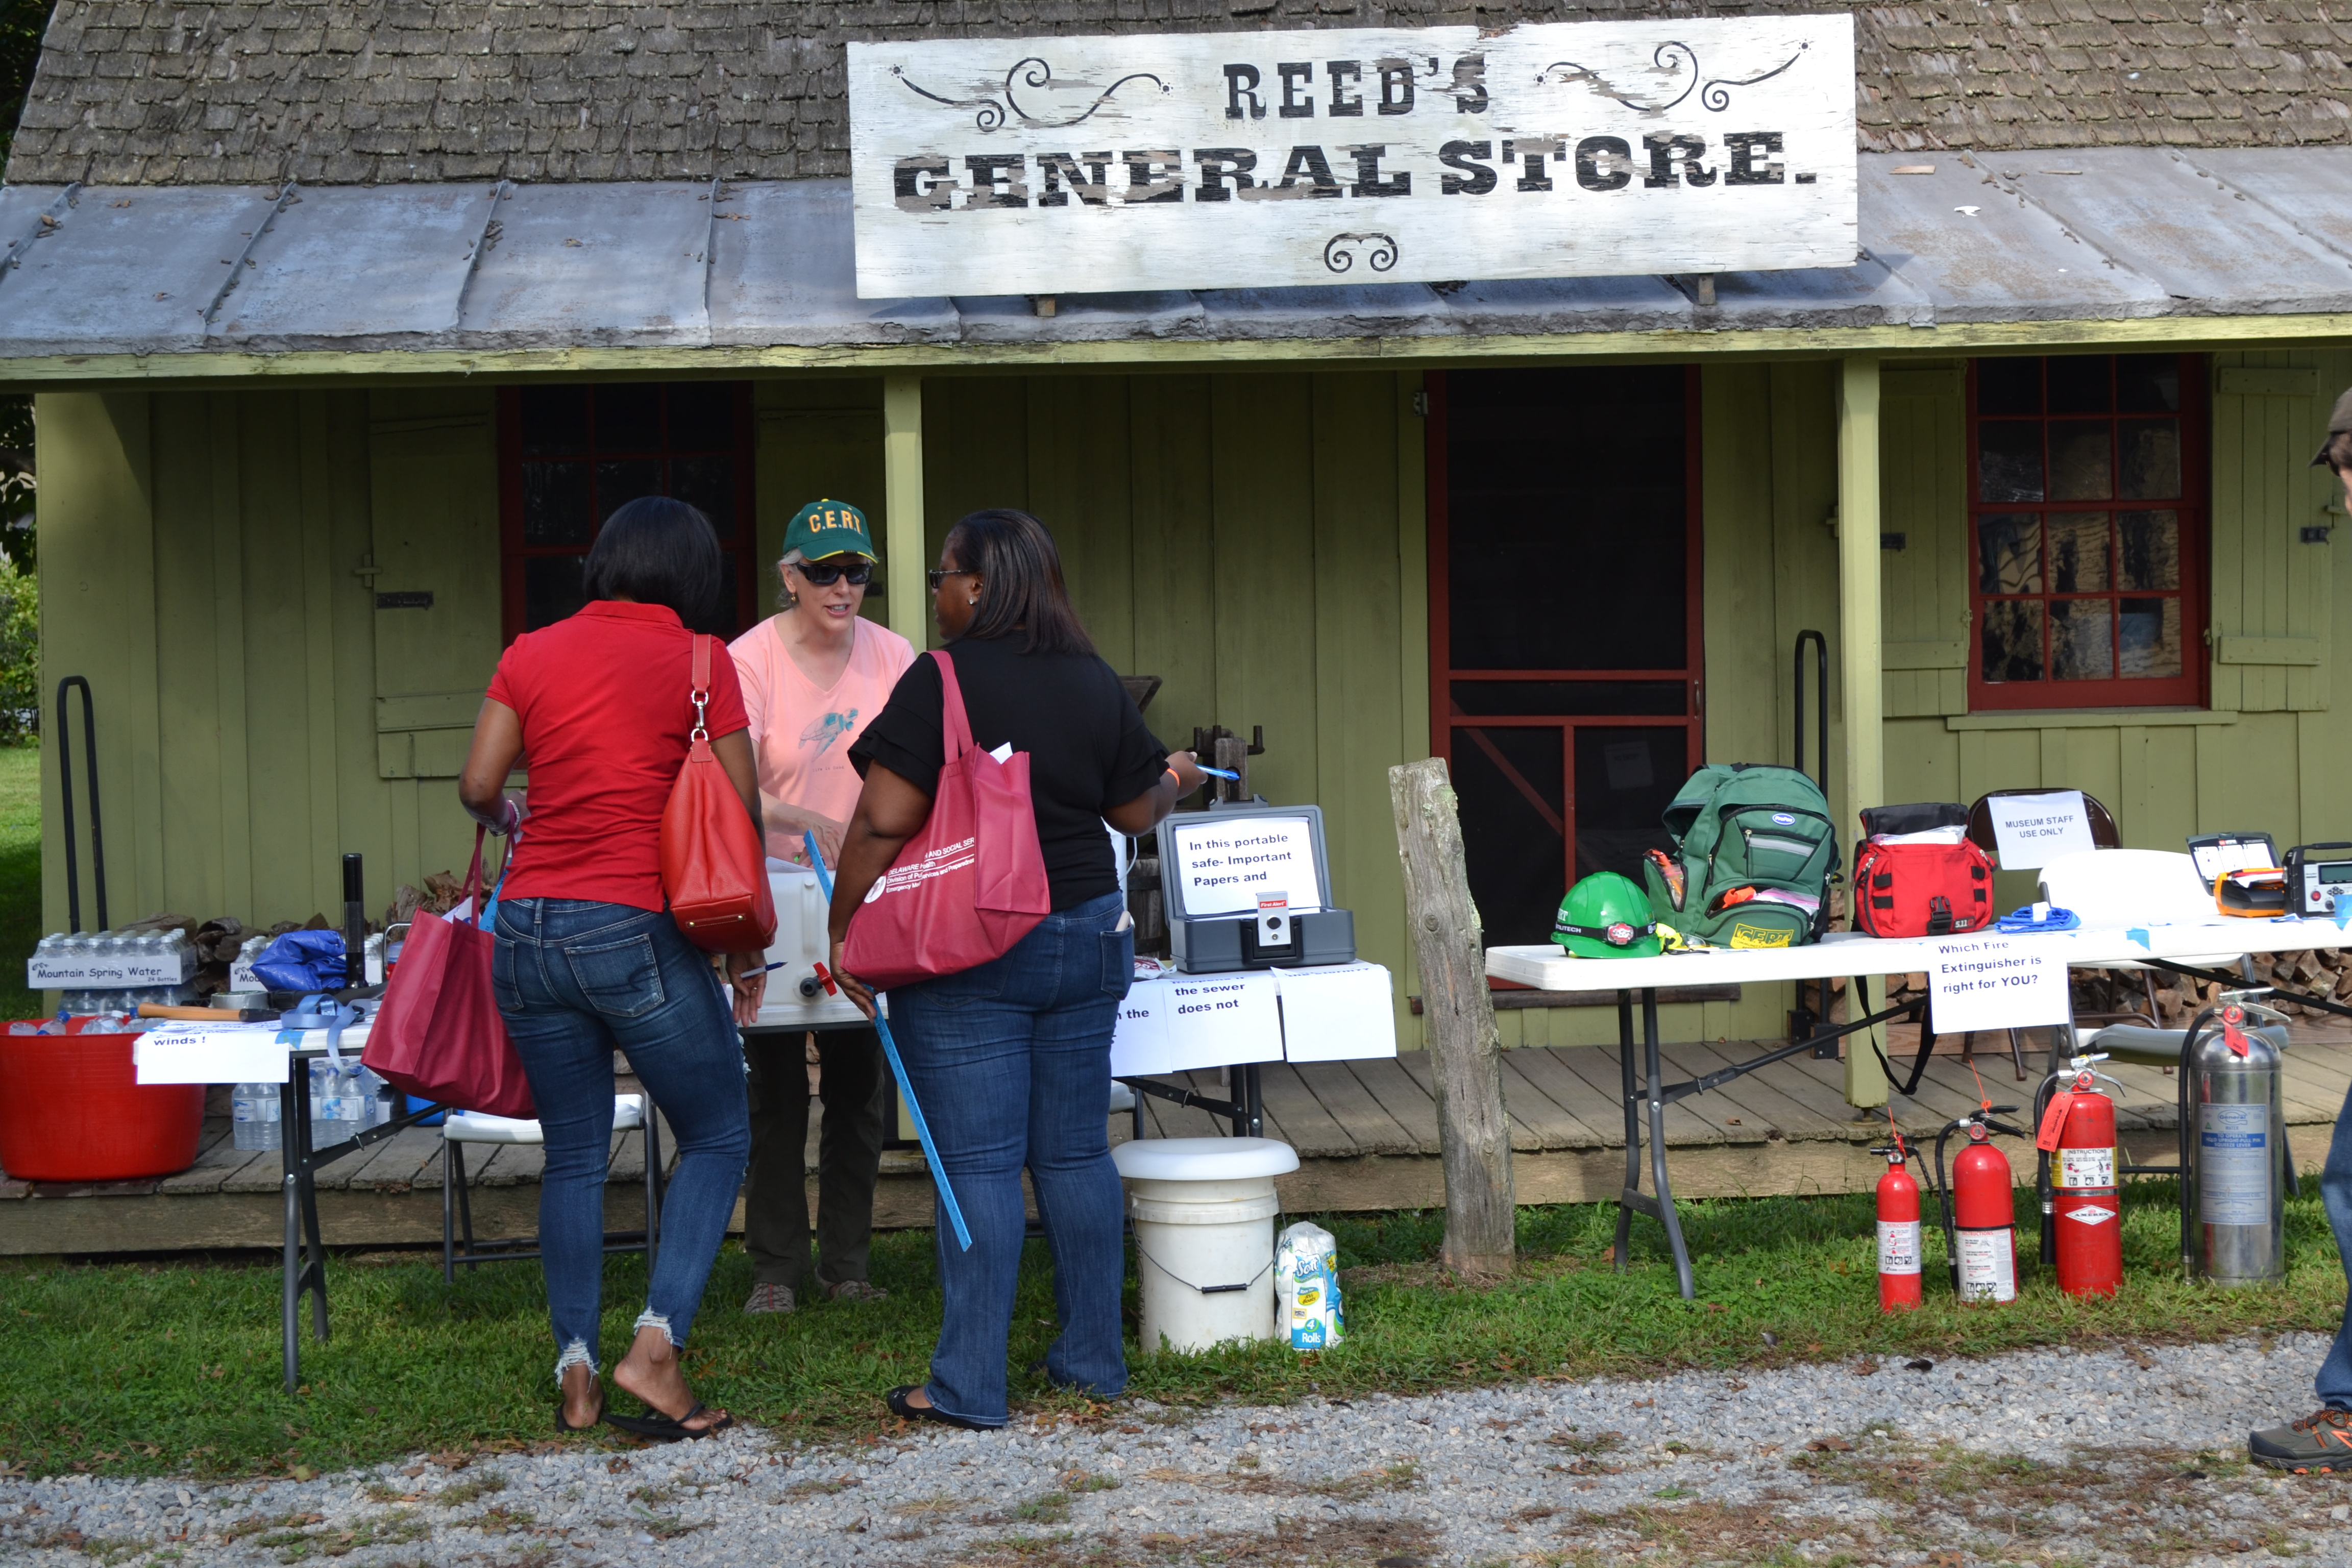 Family Preparedness Day Photo of Reed's General Store Supplies Vendor Table